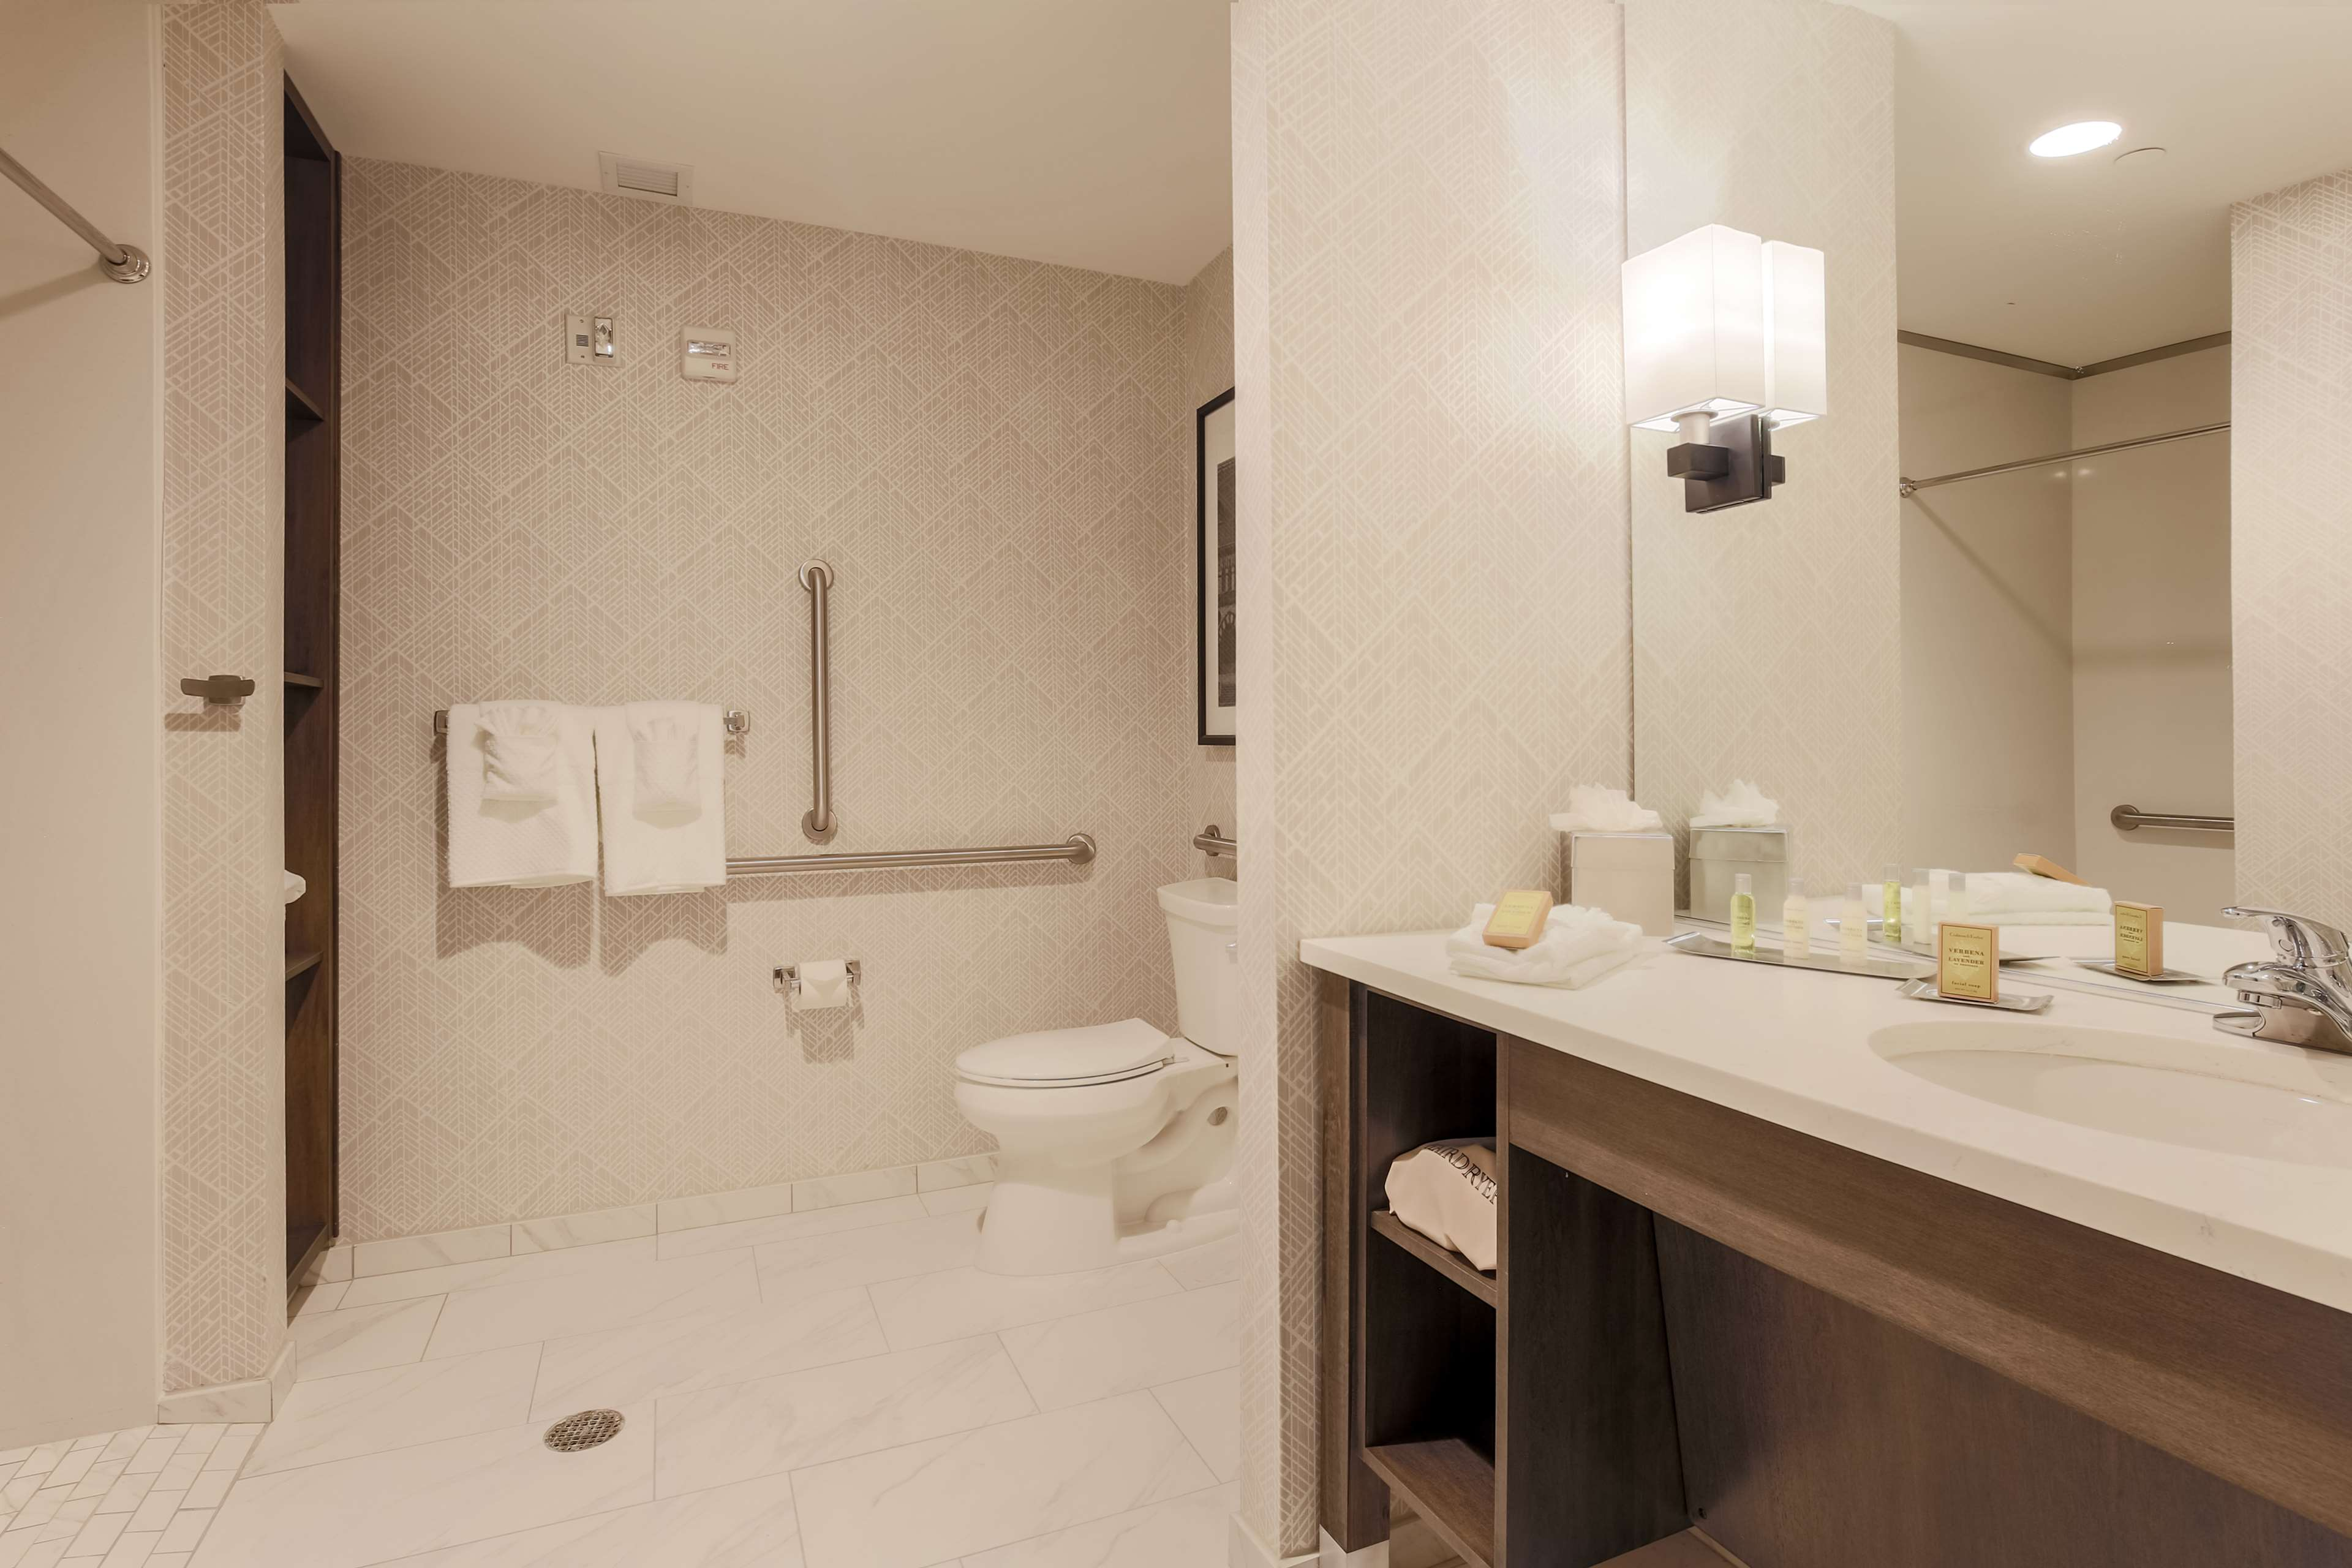 DoubleTree by Hilton Evansville image 29